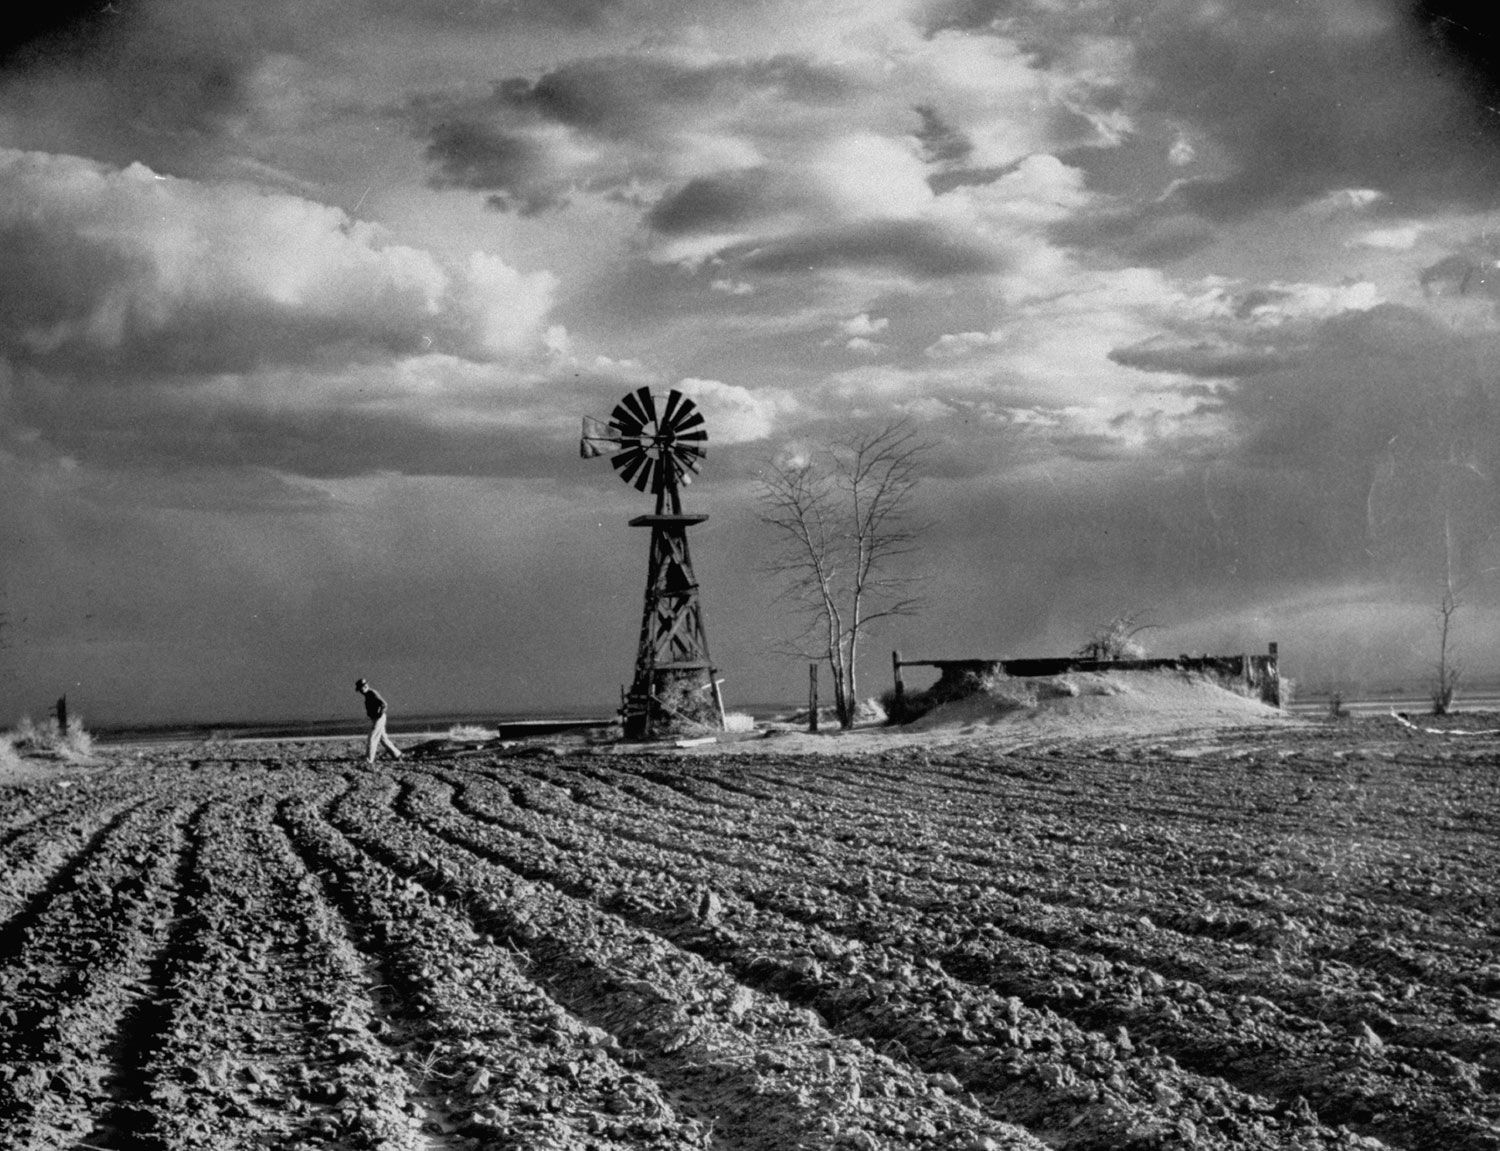 'Plague Upon the Land' Scenes From an American Dust Bowl